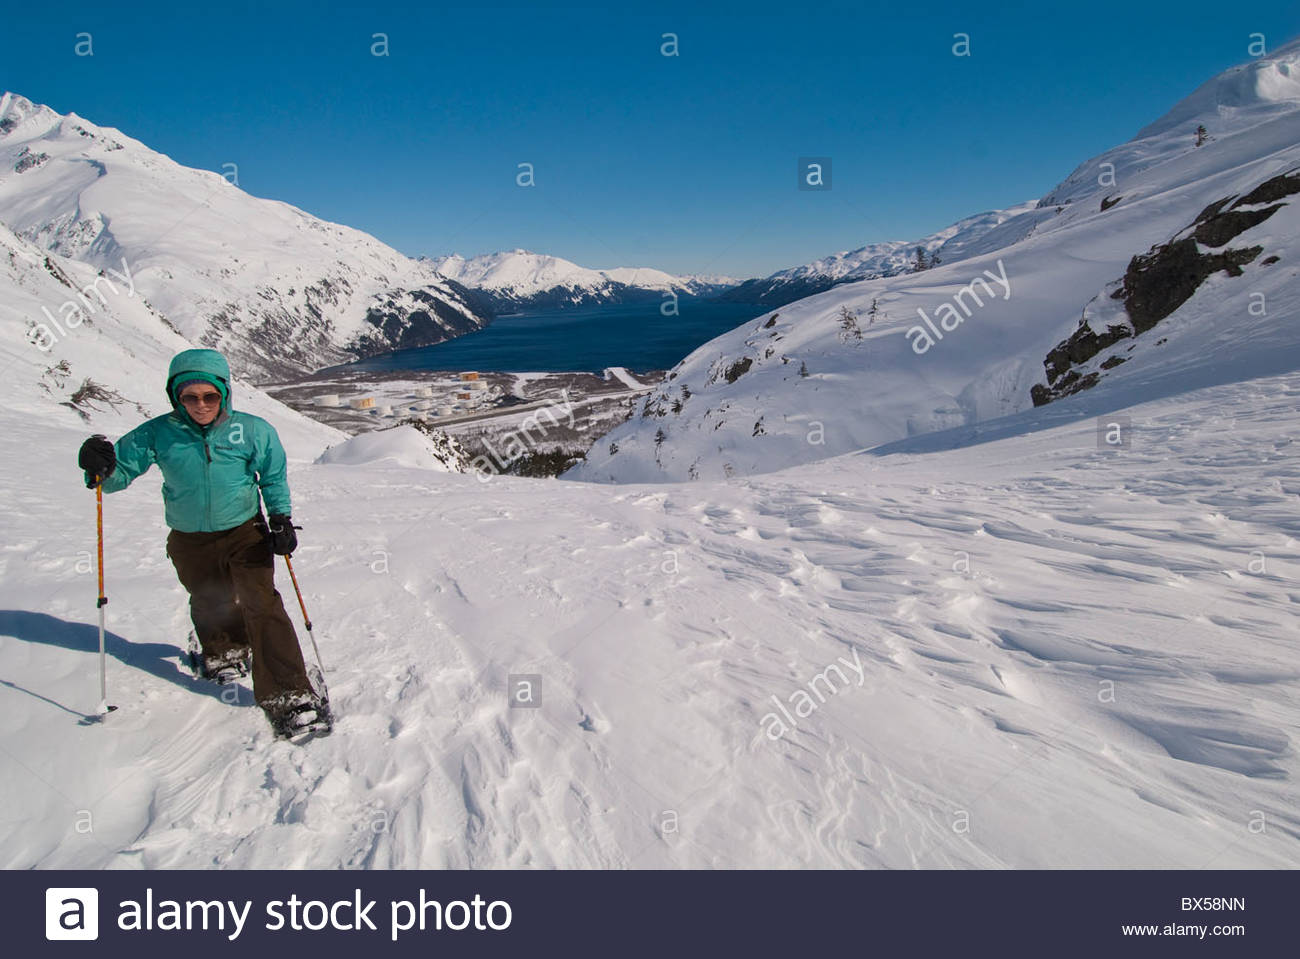 Alaska, Portage Pass in the Chugach National Forest from Whittier to Portage Lake in winter with snowshoes. Stock Photo